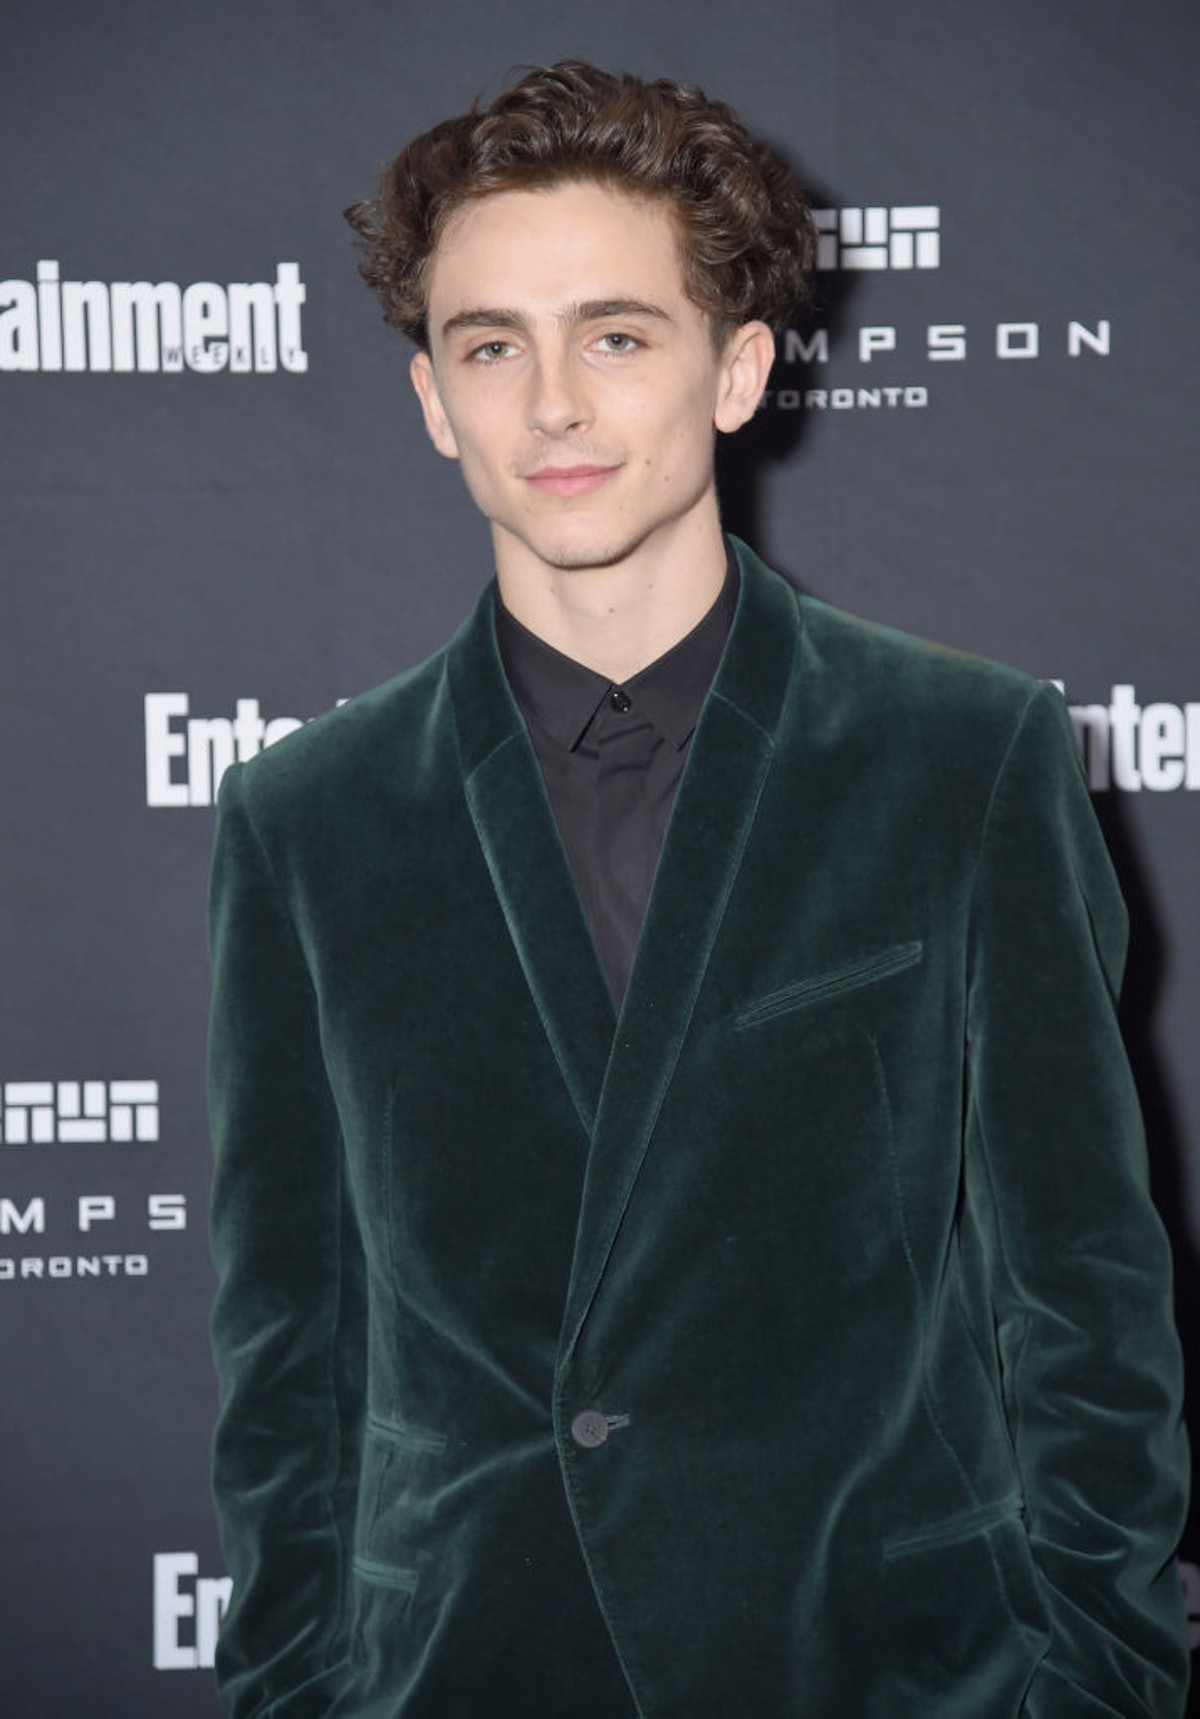 Entertainment Weekly's Must List Party At The Toronto International Film Festival 2018 At The Thomps...